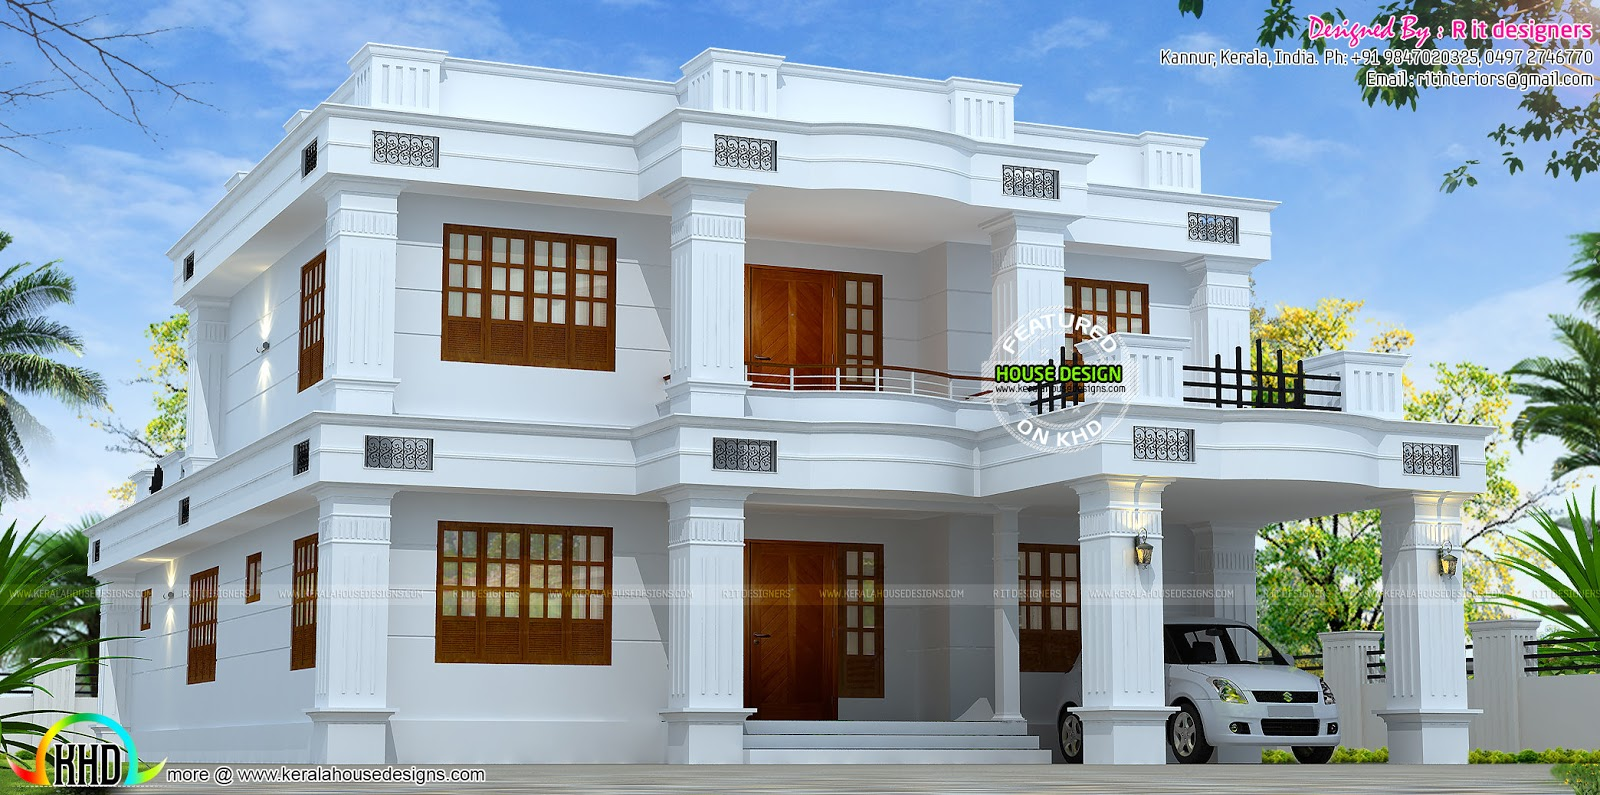 Kerala home design for House and home decorating